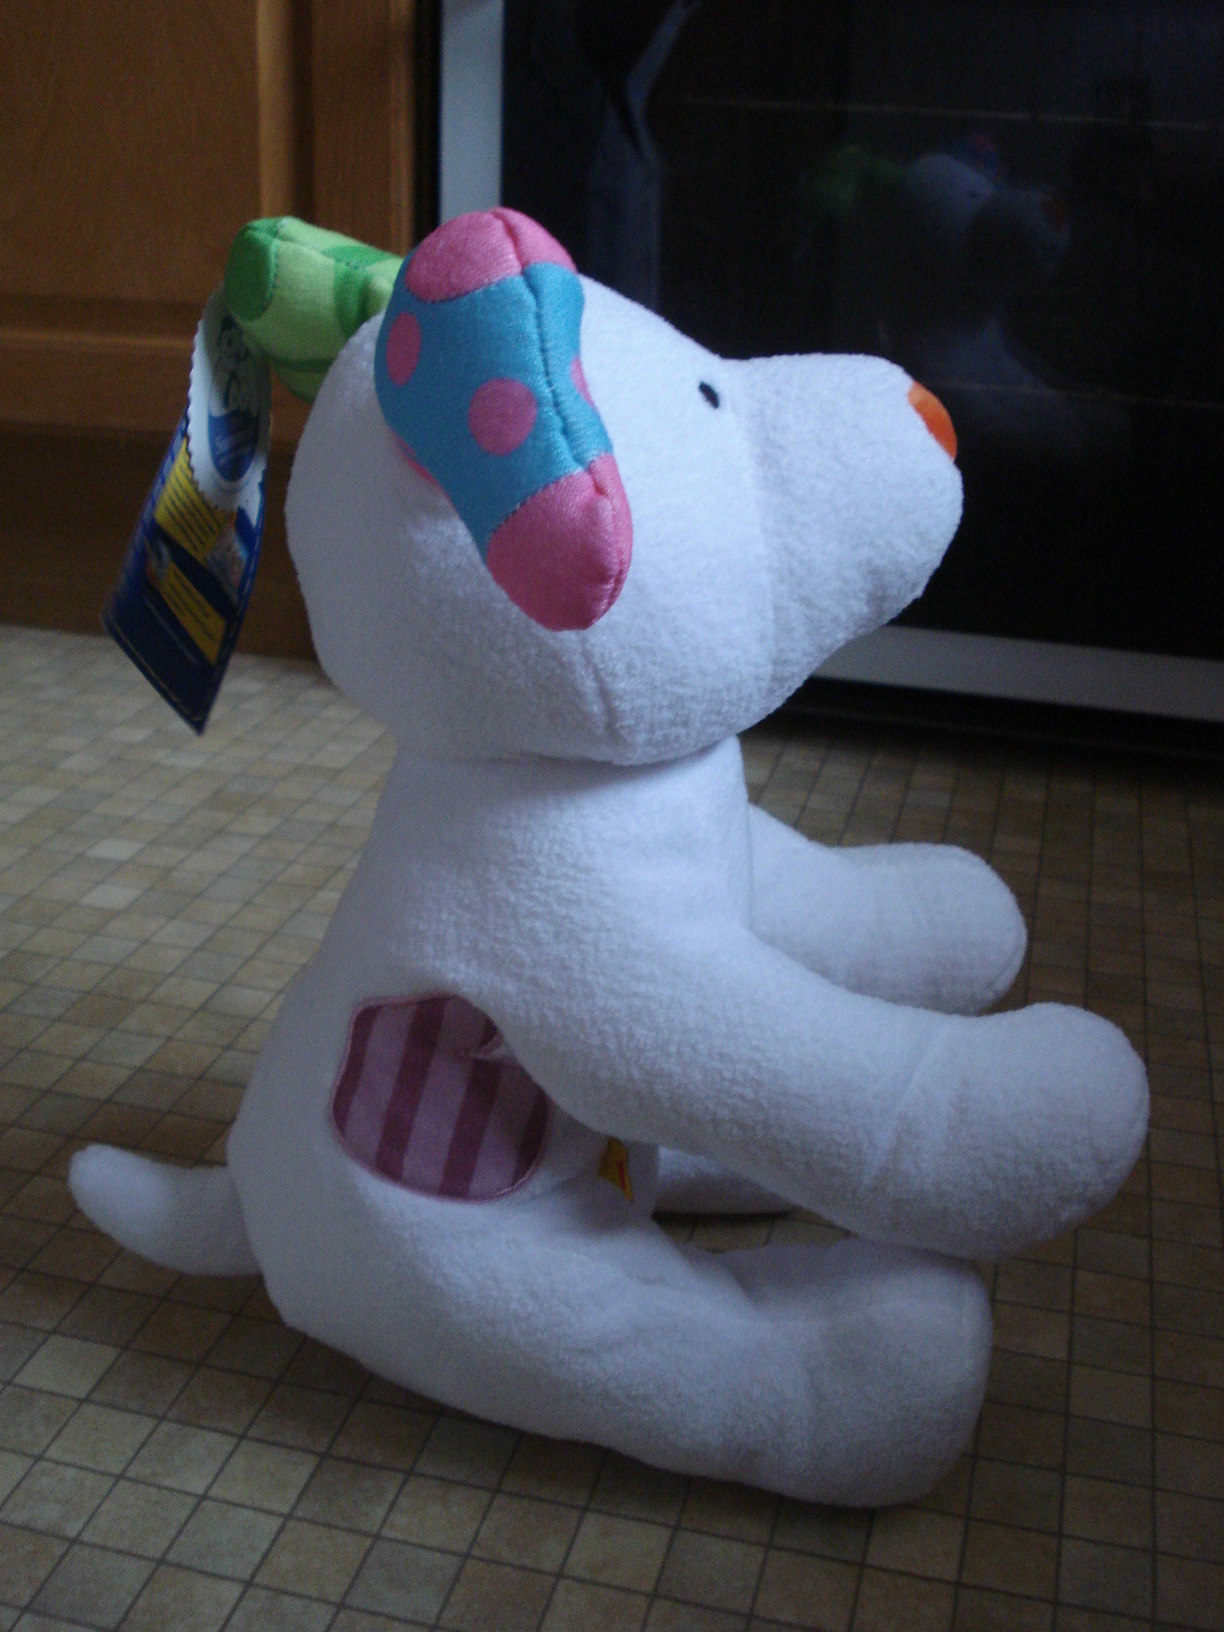 Christmas Stocking fillers from Build-A-Bear